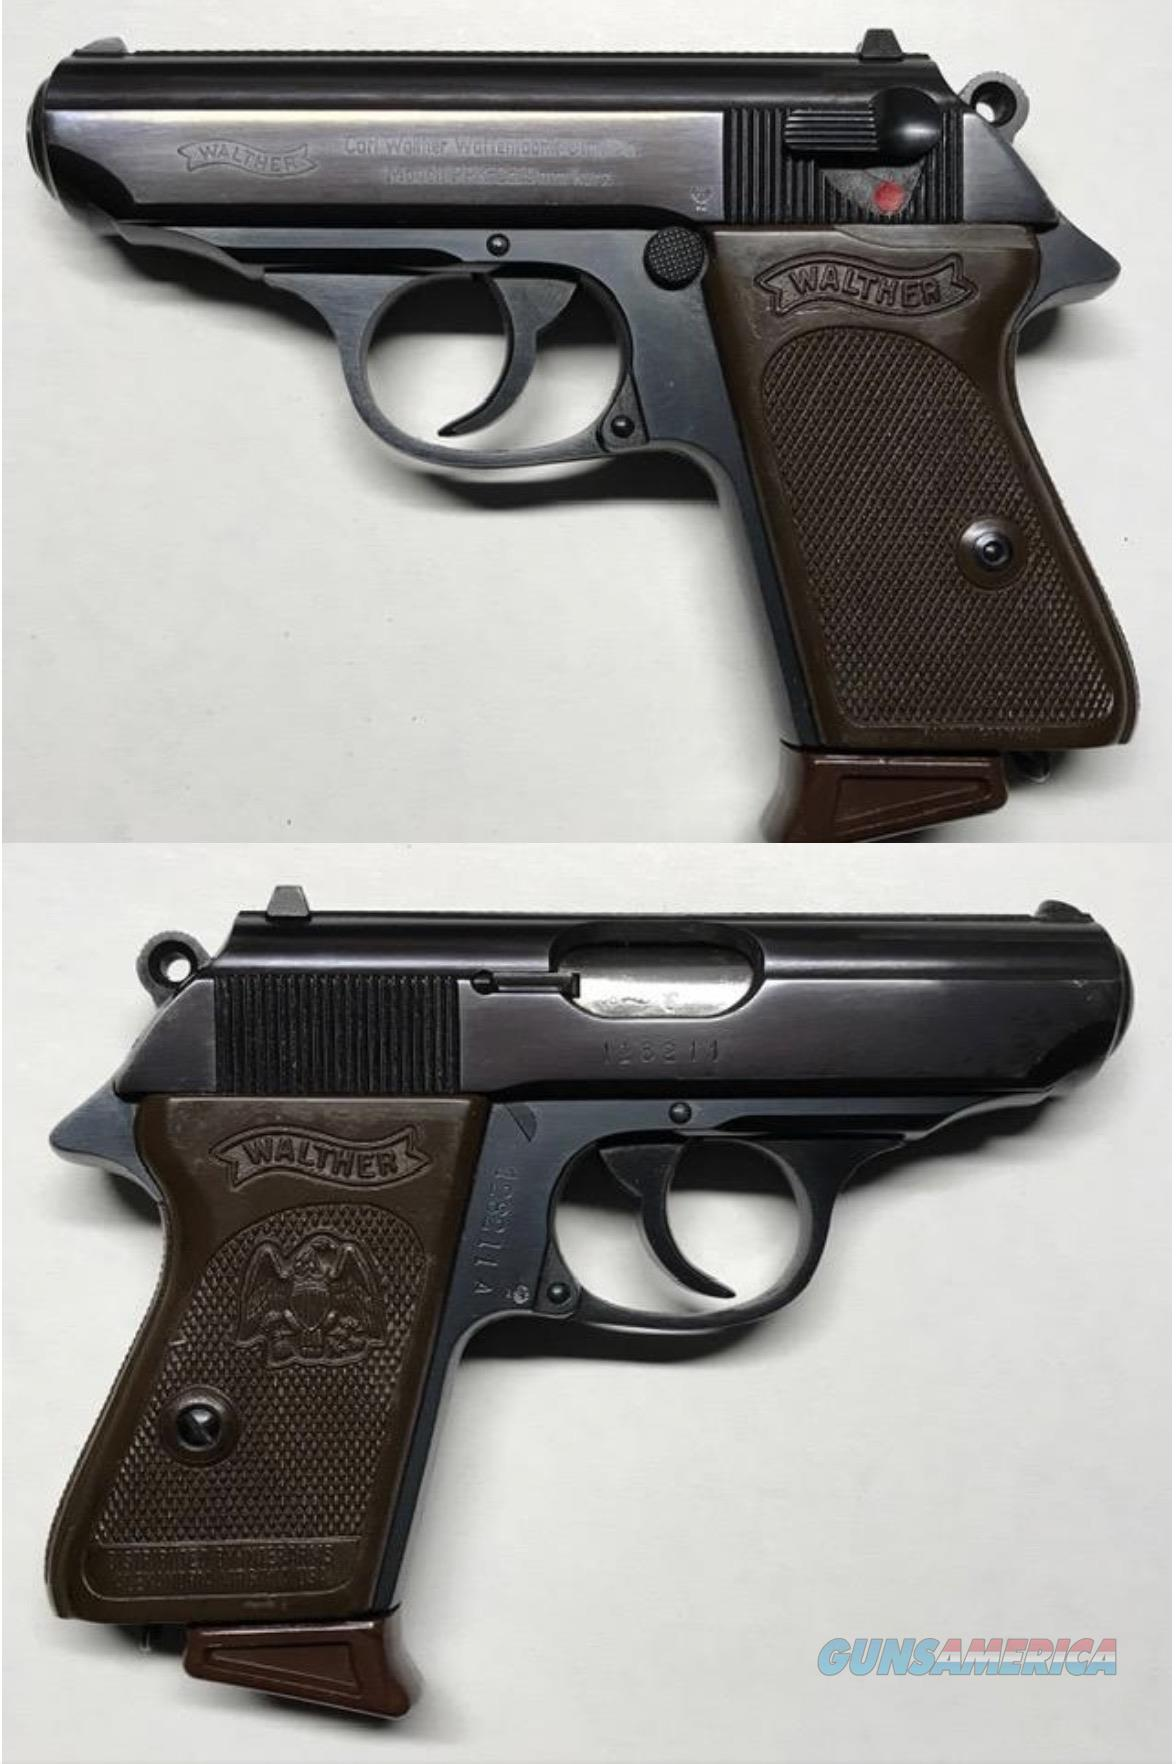 German Walther PPK 9mmK (.380) Curio & Relic Mfg. 1968  Guns > Pistols > Walther Pistols > Post WWII > PPK Series